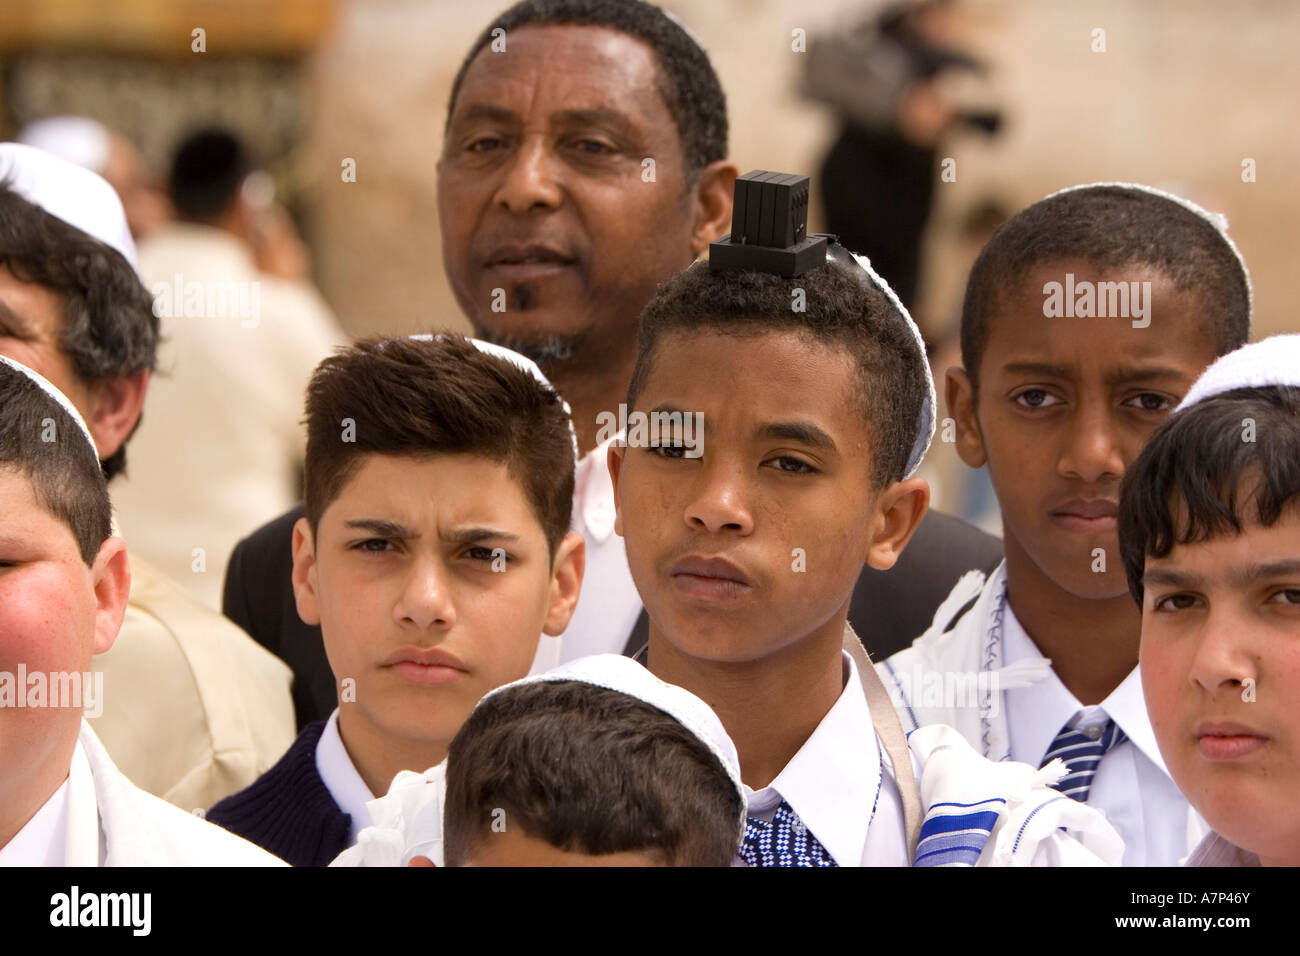 group portrait of bar mitzvah boys in jerusalem israel - Stock Image